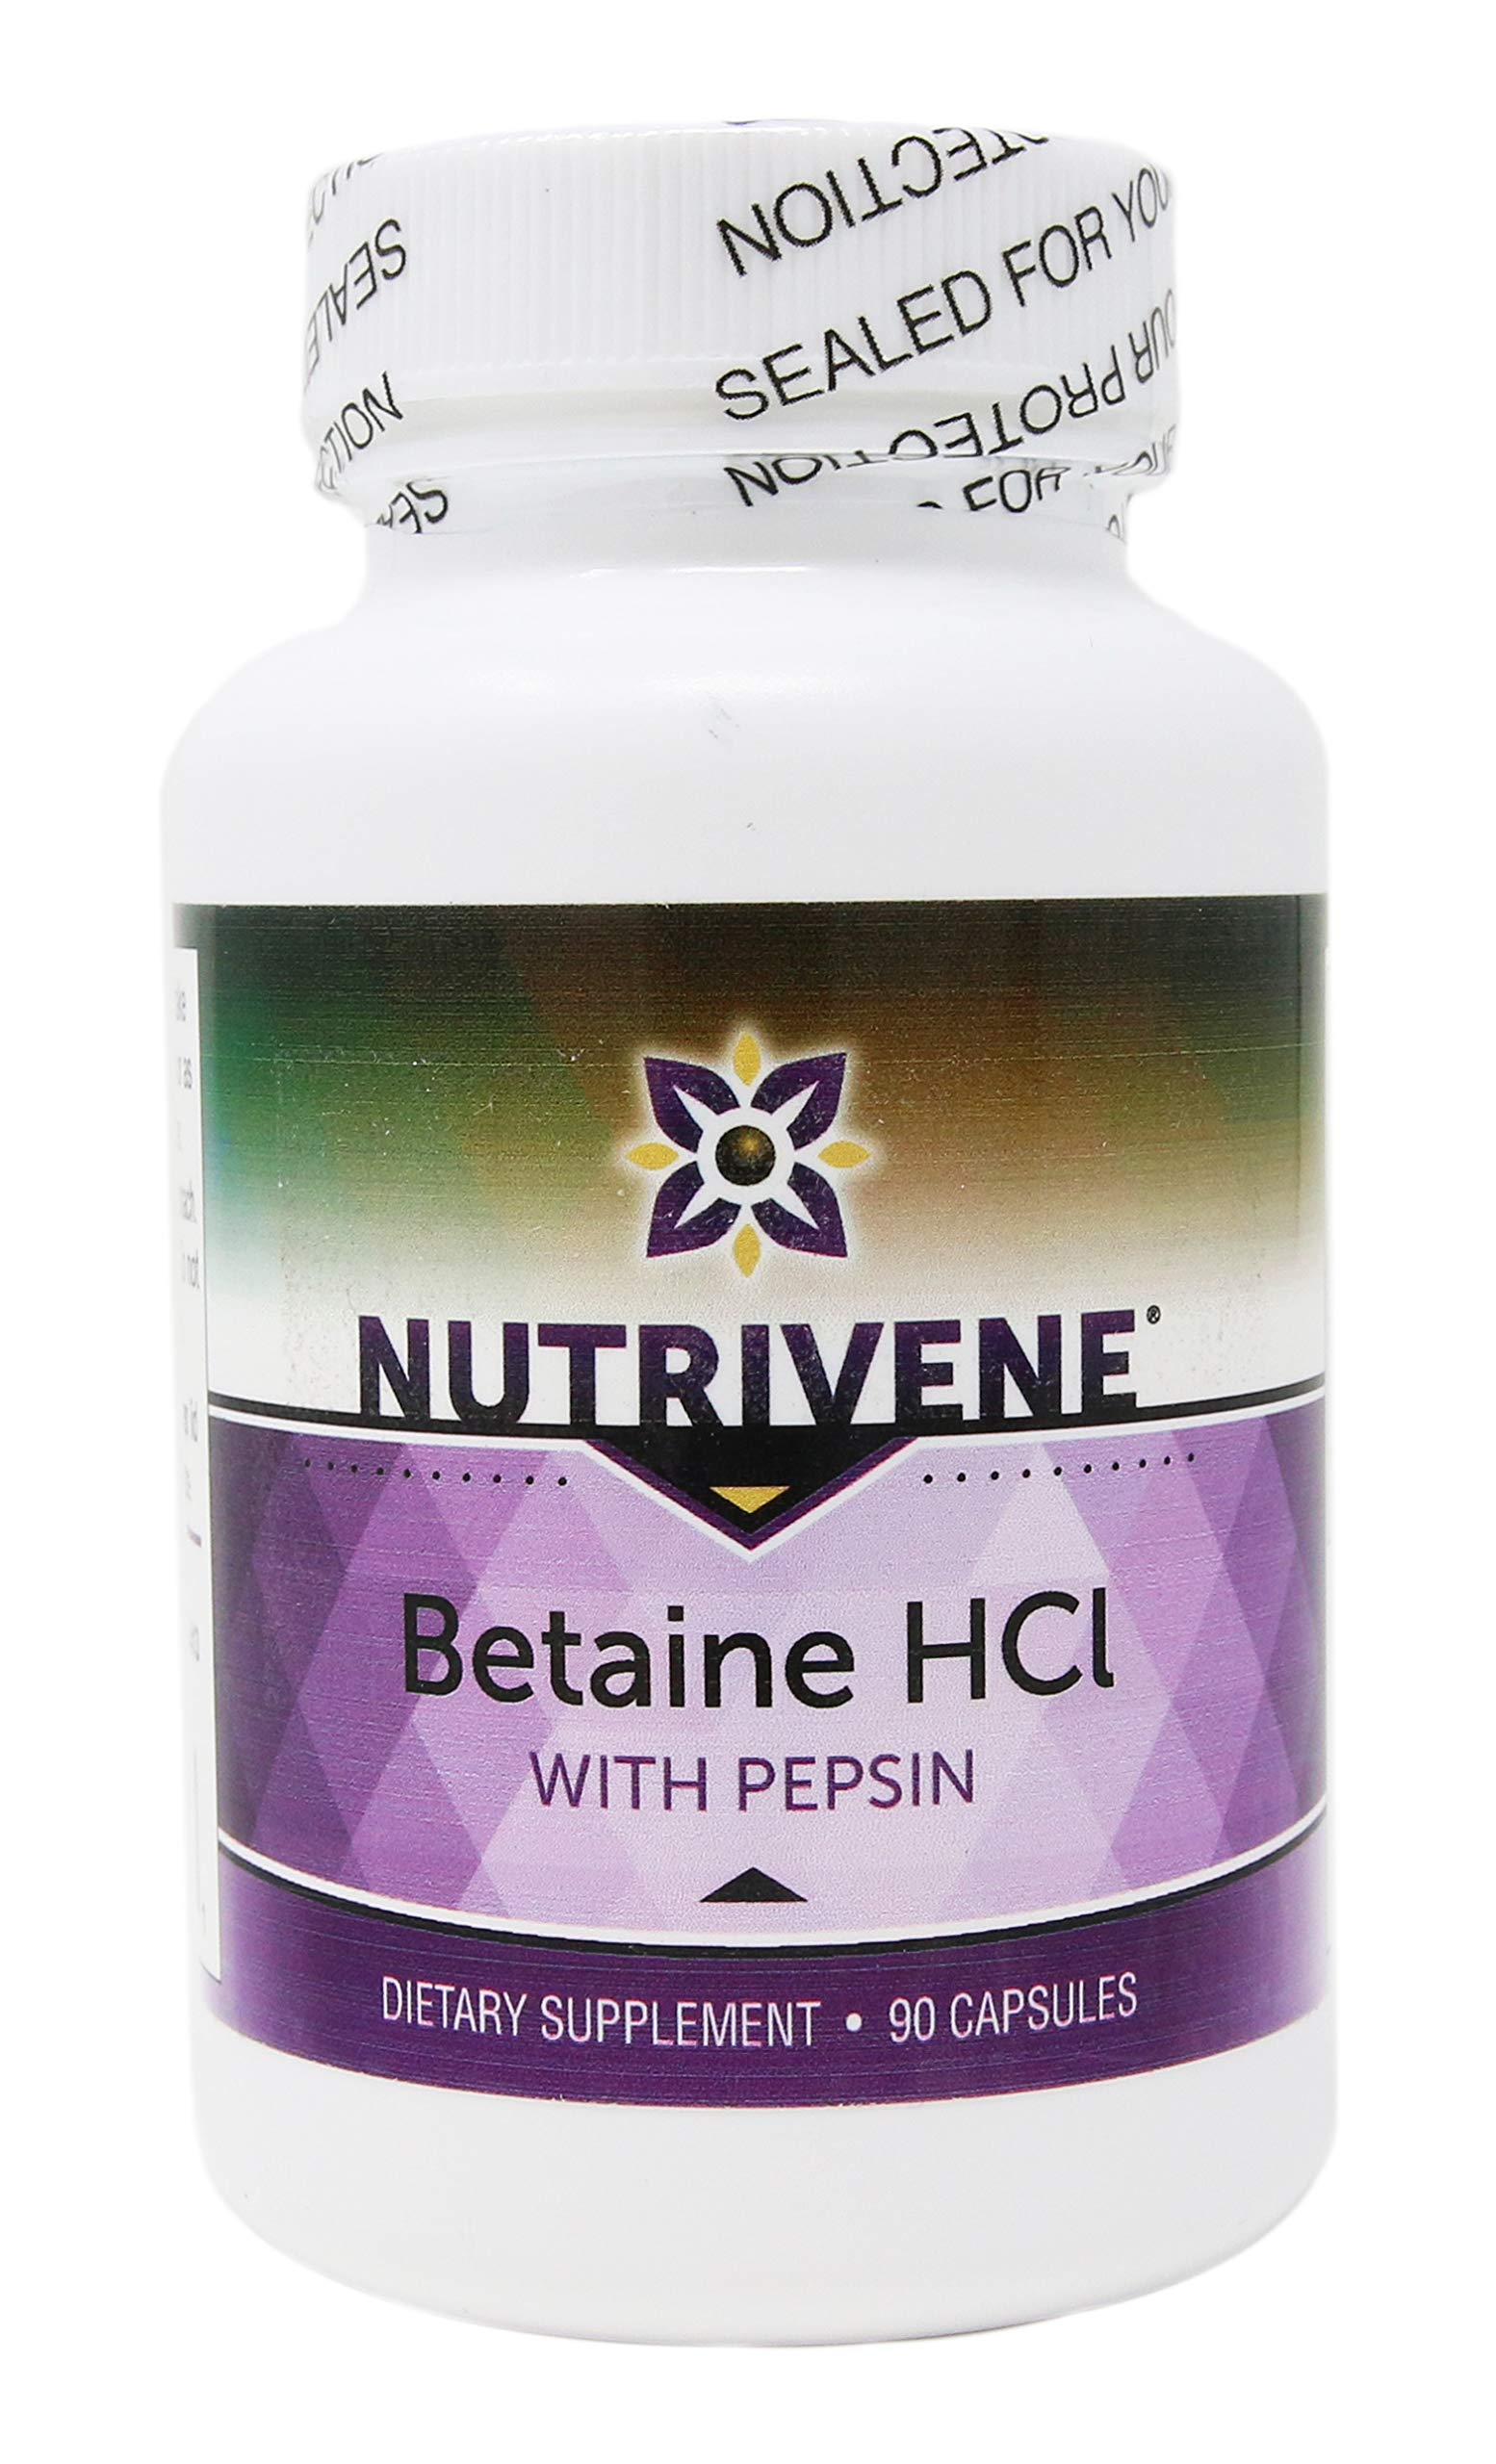 Nutrivene: Betaine HCL with Pepsin (90 Capsules)